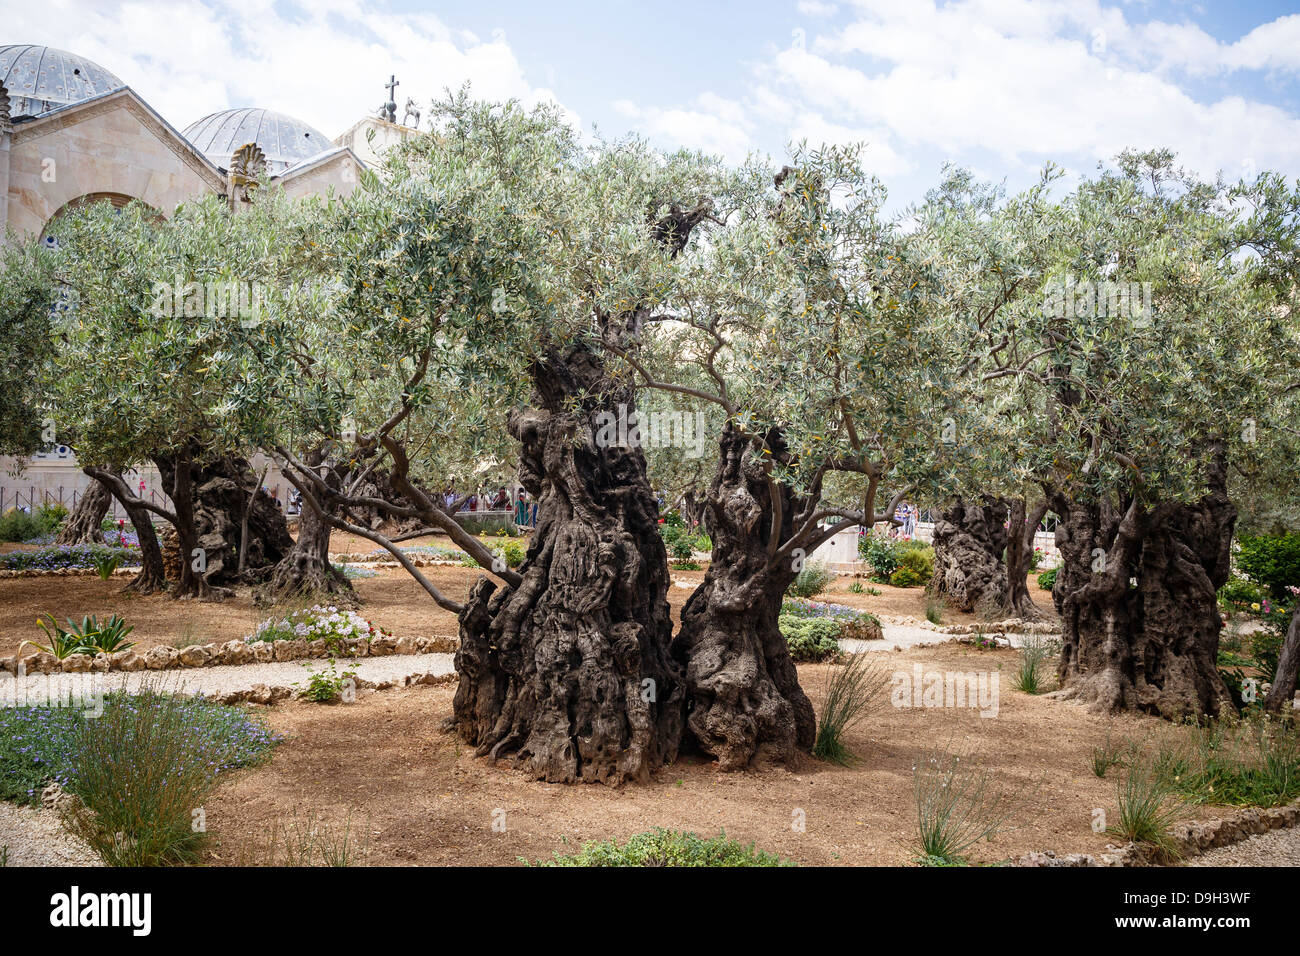 Olive Trees In The Garden Of Gethsemane, Jerusalem, Israel. Great Pictures